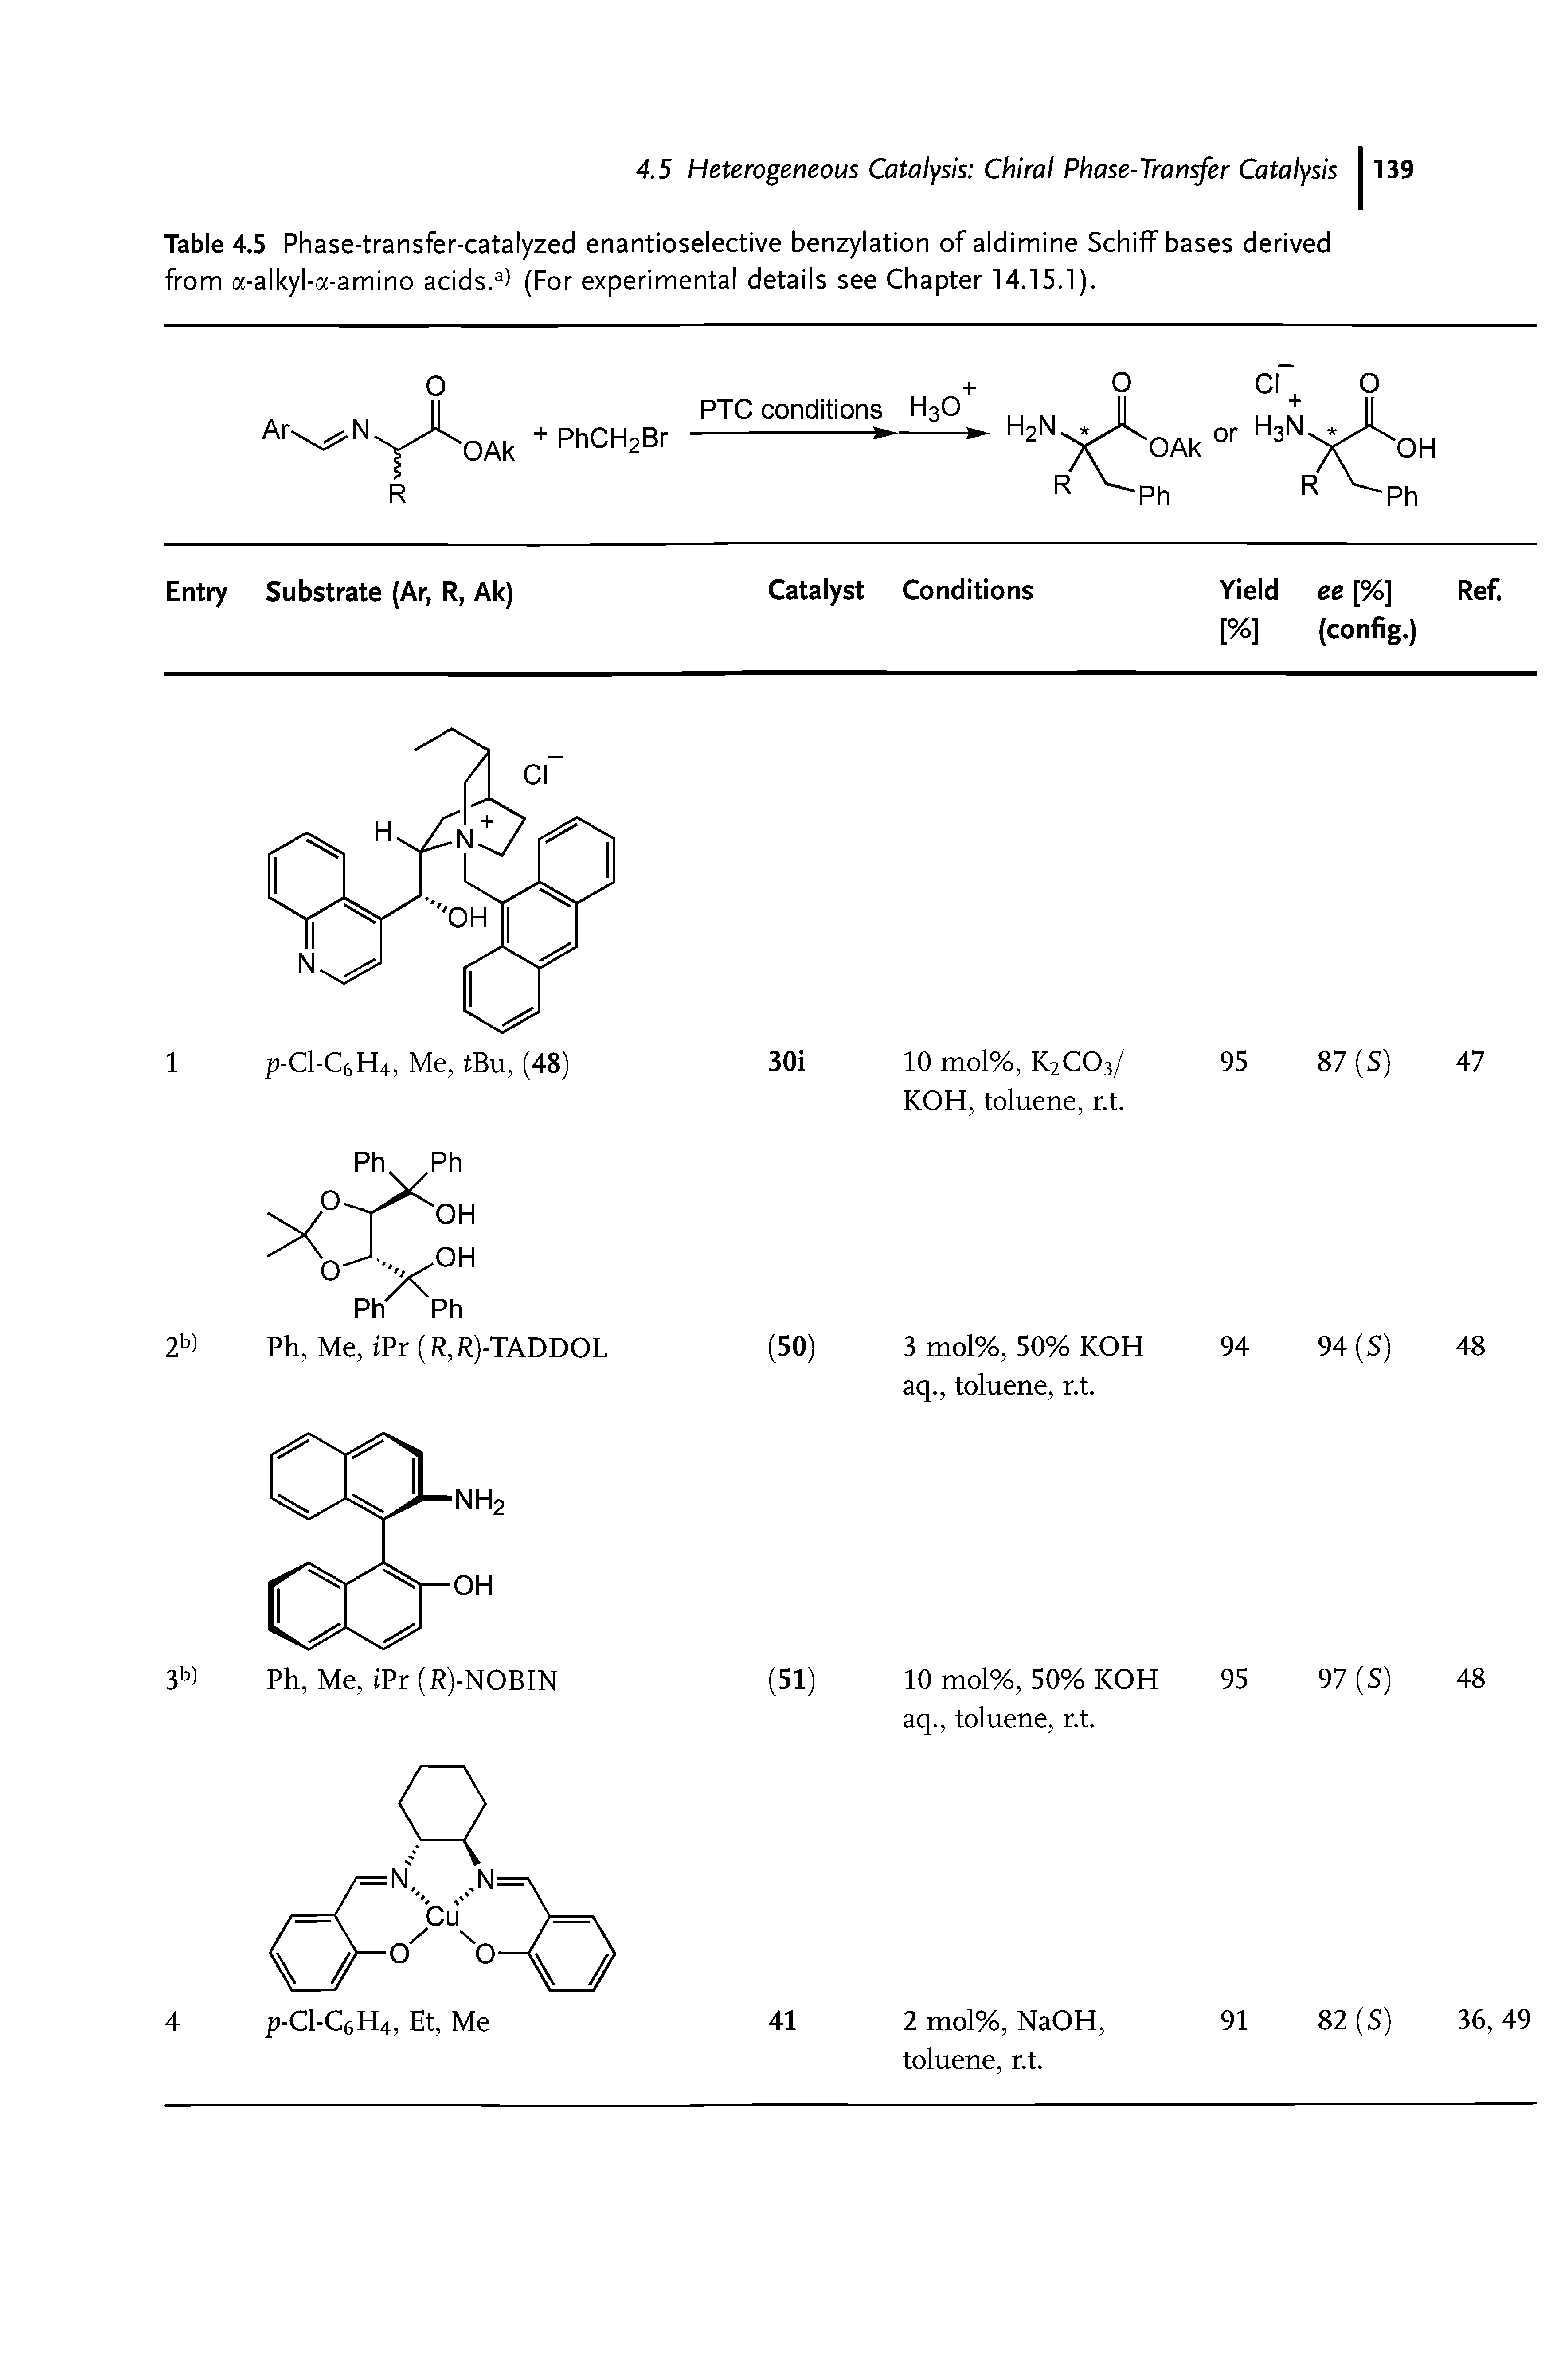 "Table 4.5 <a href=""/info/phase_transfer"">Phase-transfer</a>-<a href=""/info/enantioselective_ru_catalyzed"">catalyzed enantioselective</a> benzylation of aldimine <a href=""/info/schiff_base_derivatives"">Schiff bases derived</a> from a-alkyl-a-<a href=""/info/amino_acids"">amino acids</a>.3) (For <a href=""/info/experimental_details"">experimental details</a> see Chapter 14.15.1)."